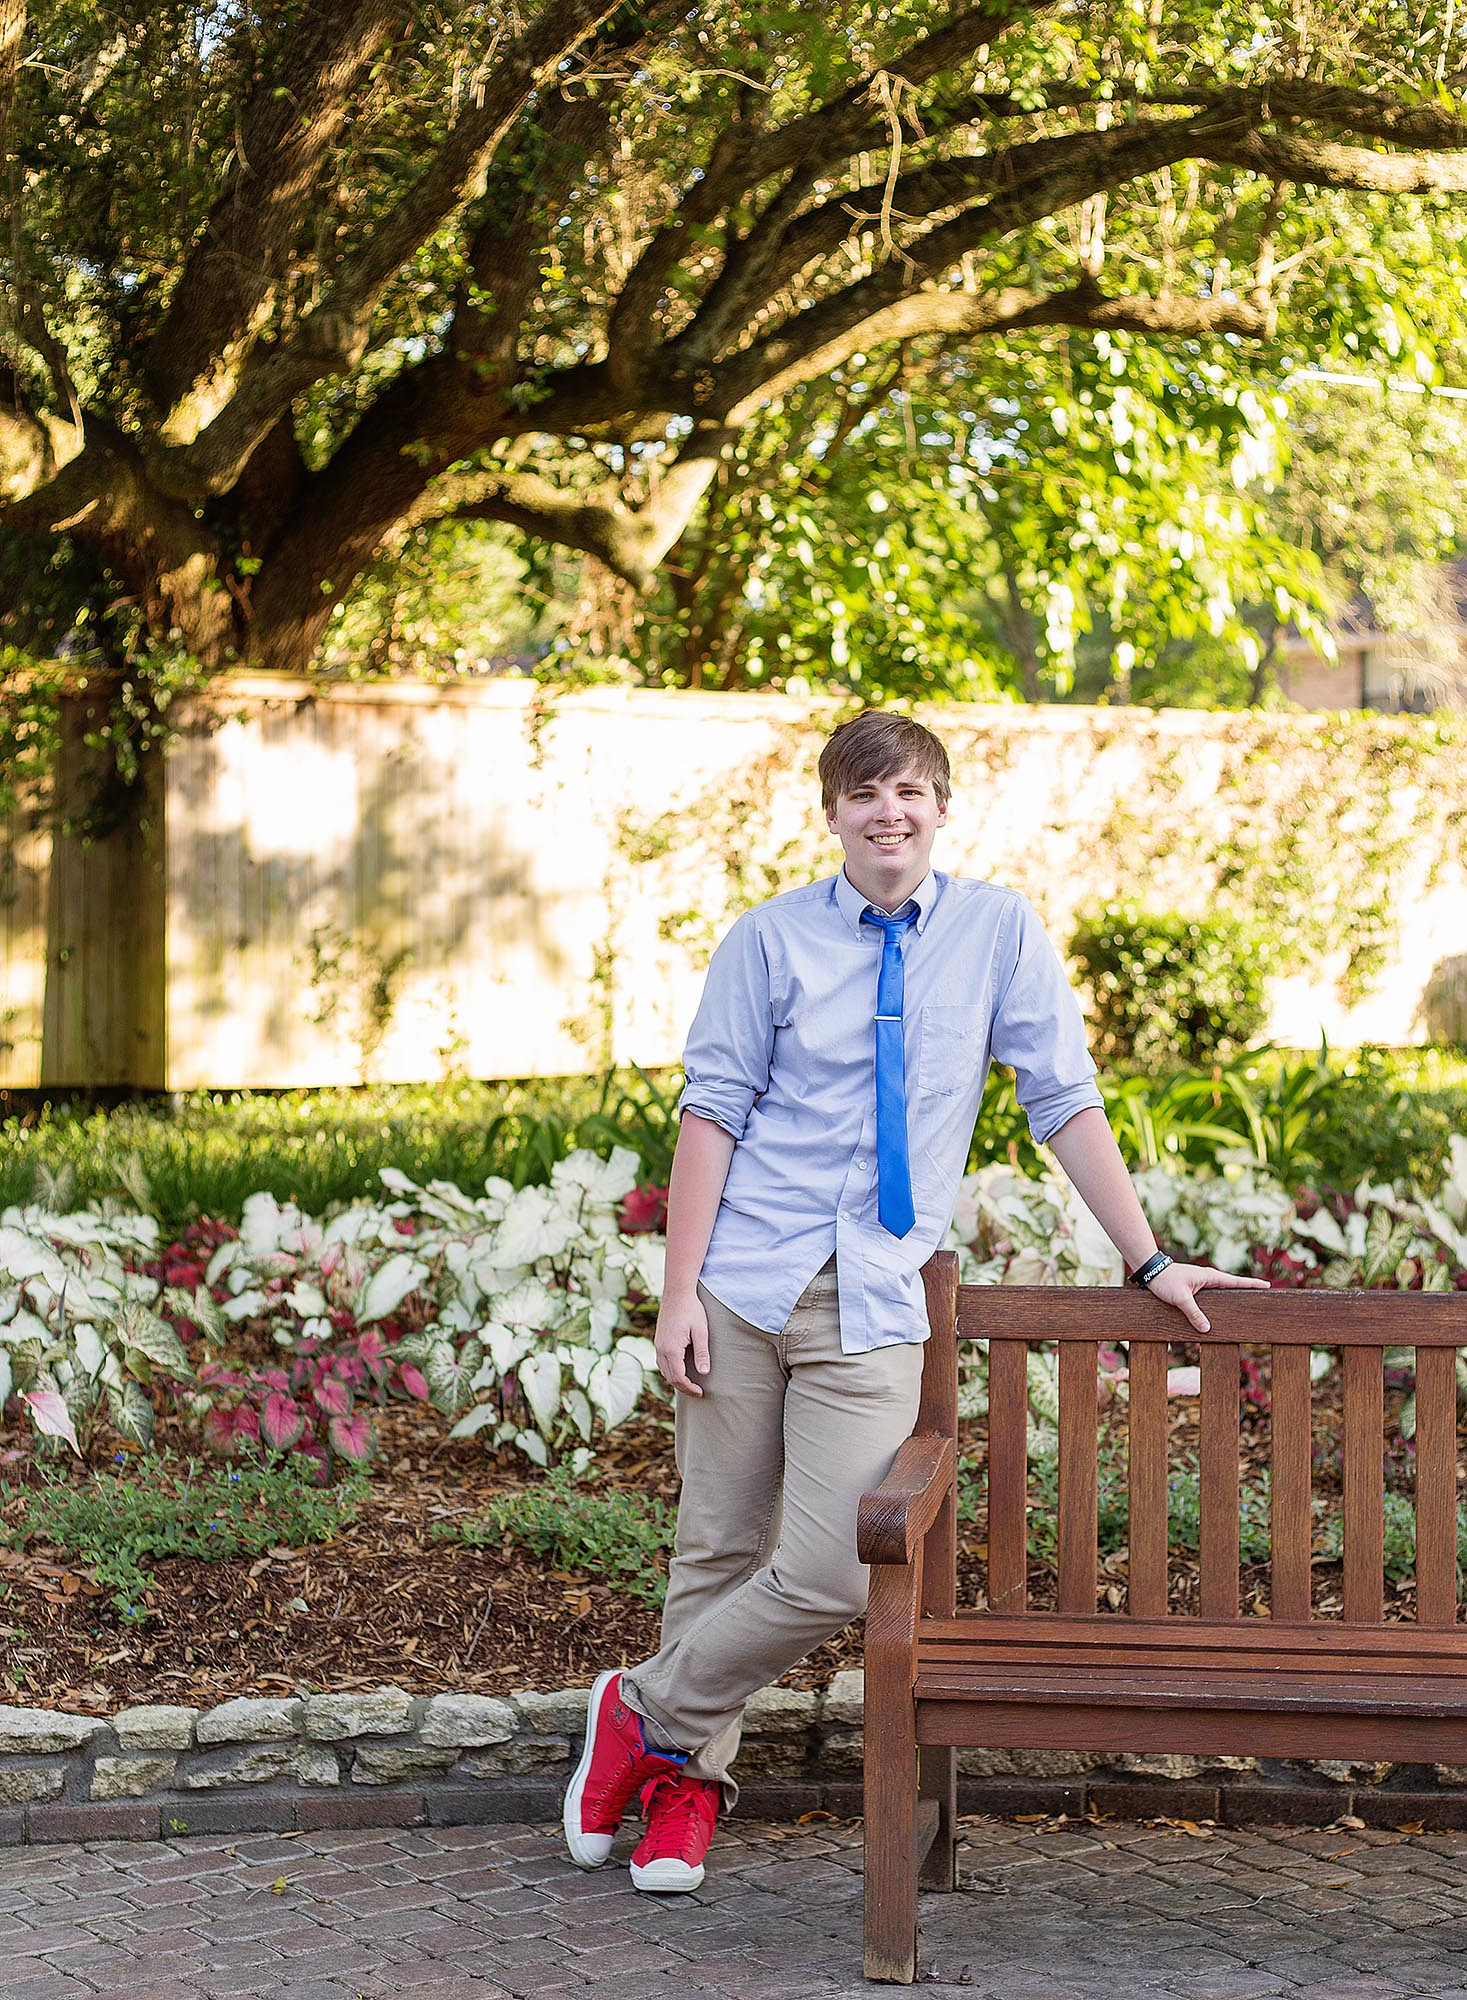 Senior boy with red converse and blue shirt and tie casually leaning against a garden bench and smiling